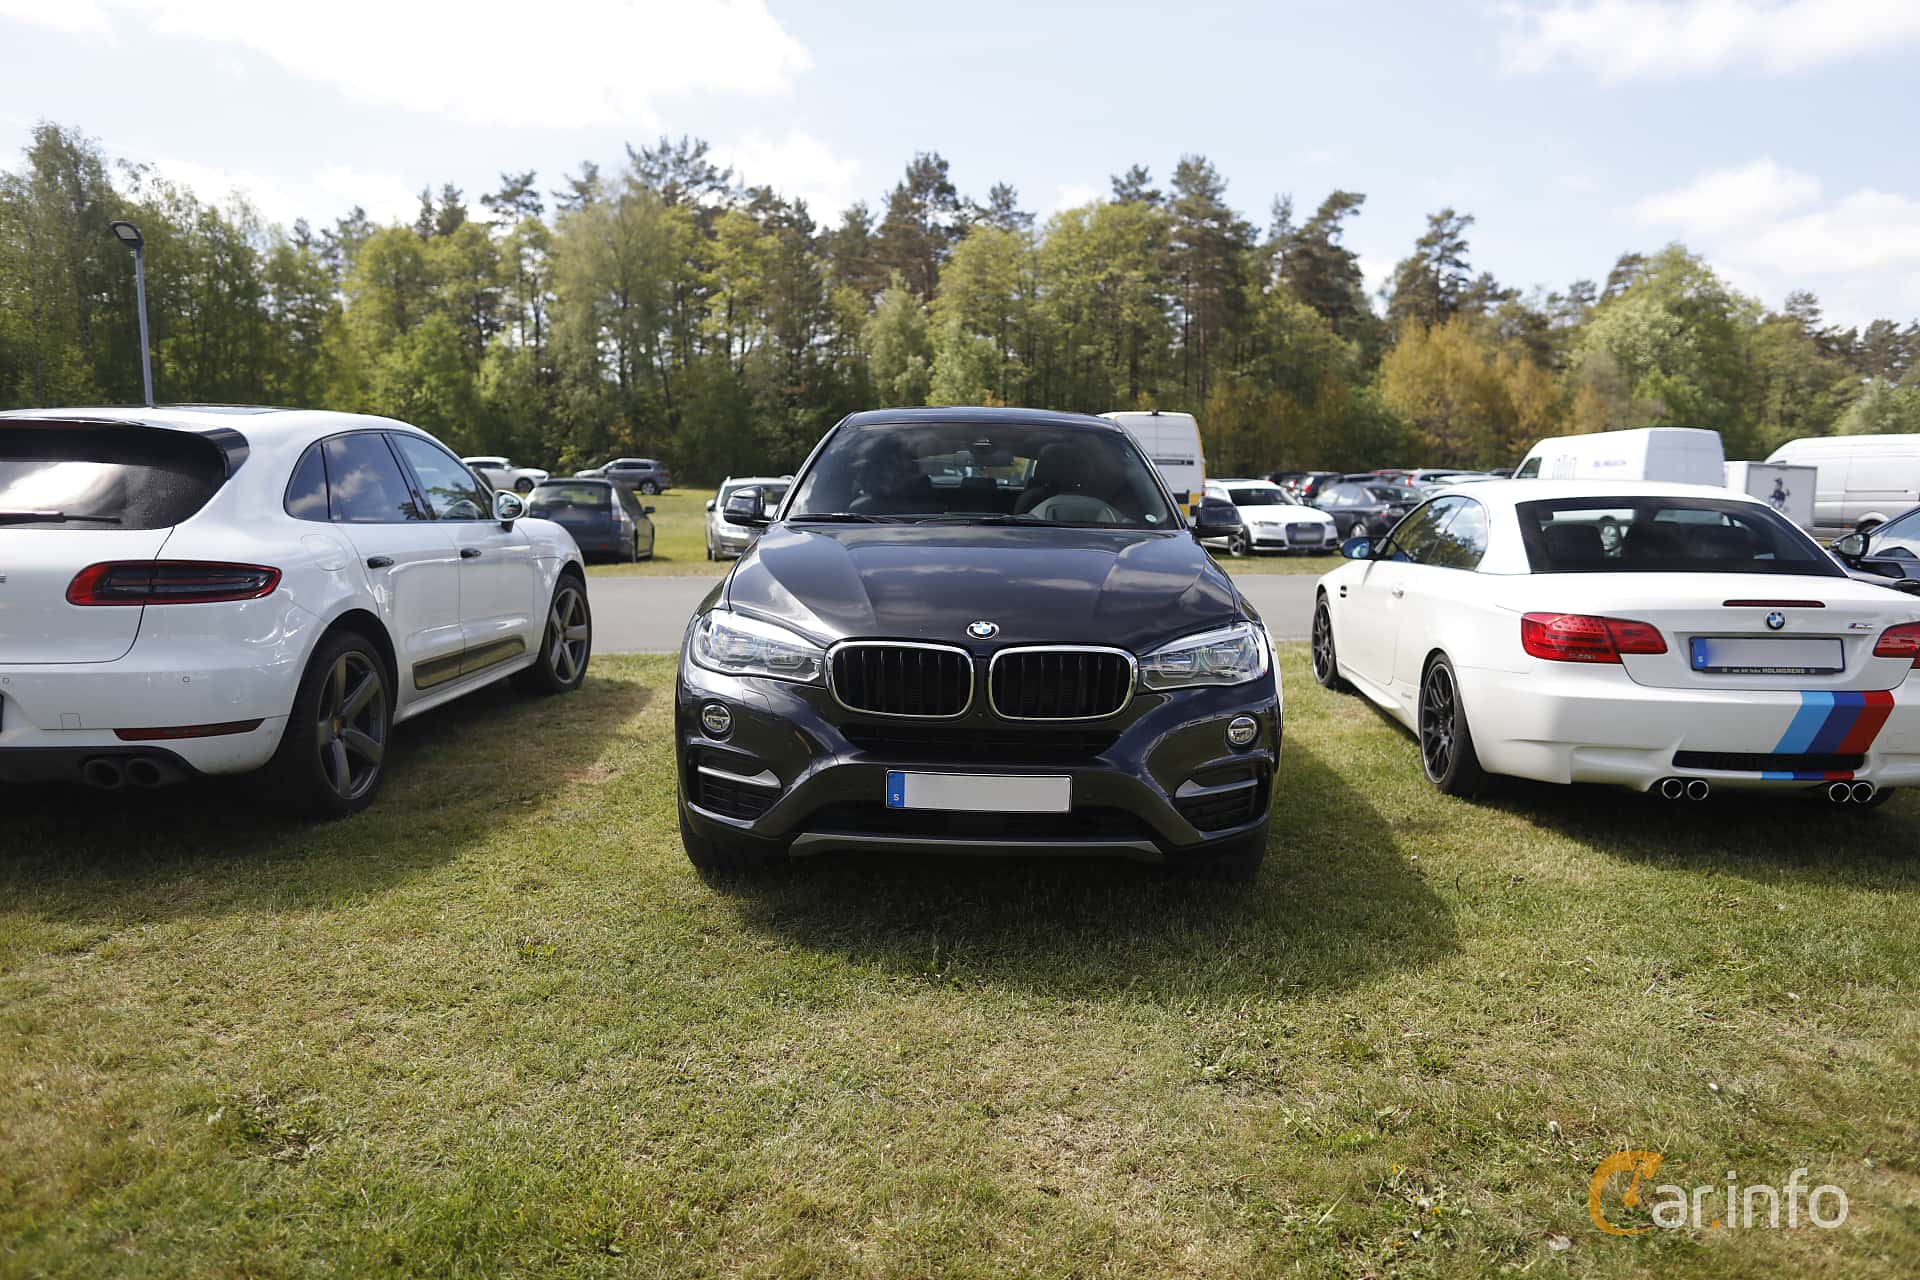 BMW X6 xDrive30d  Steptronic, 258hp, 2016 at Anderstorp Sportbilsfestival 2019